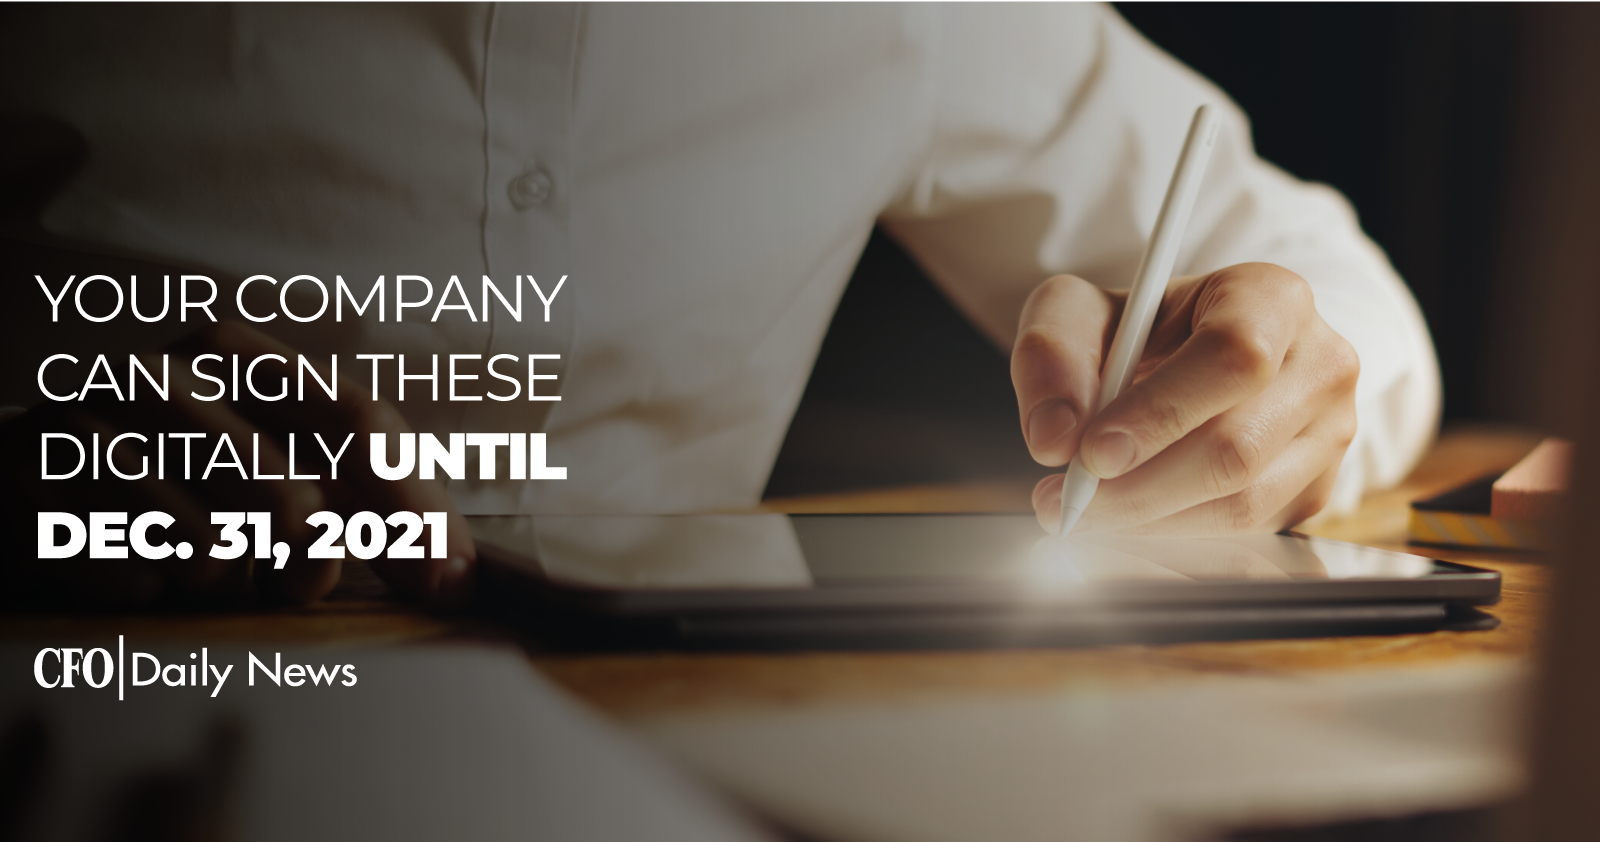 Your Company Can Sign These Digitally Until Dec. 31, 2021